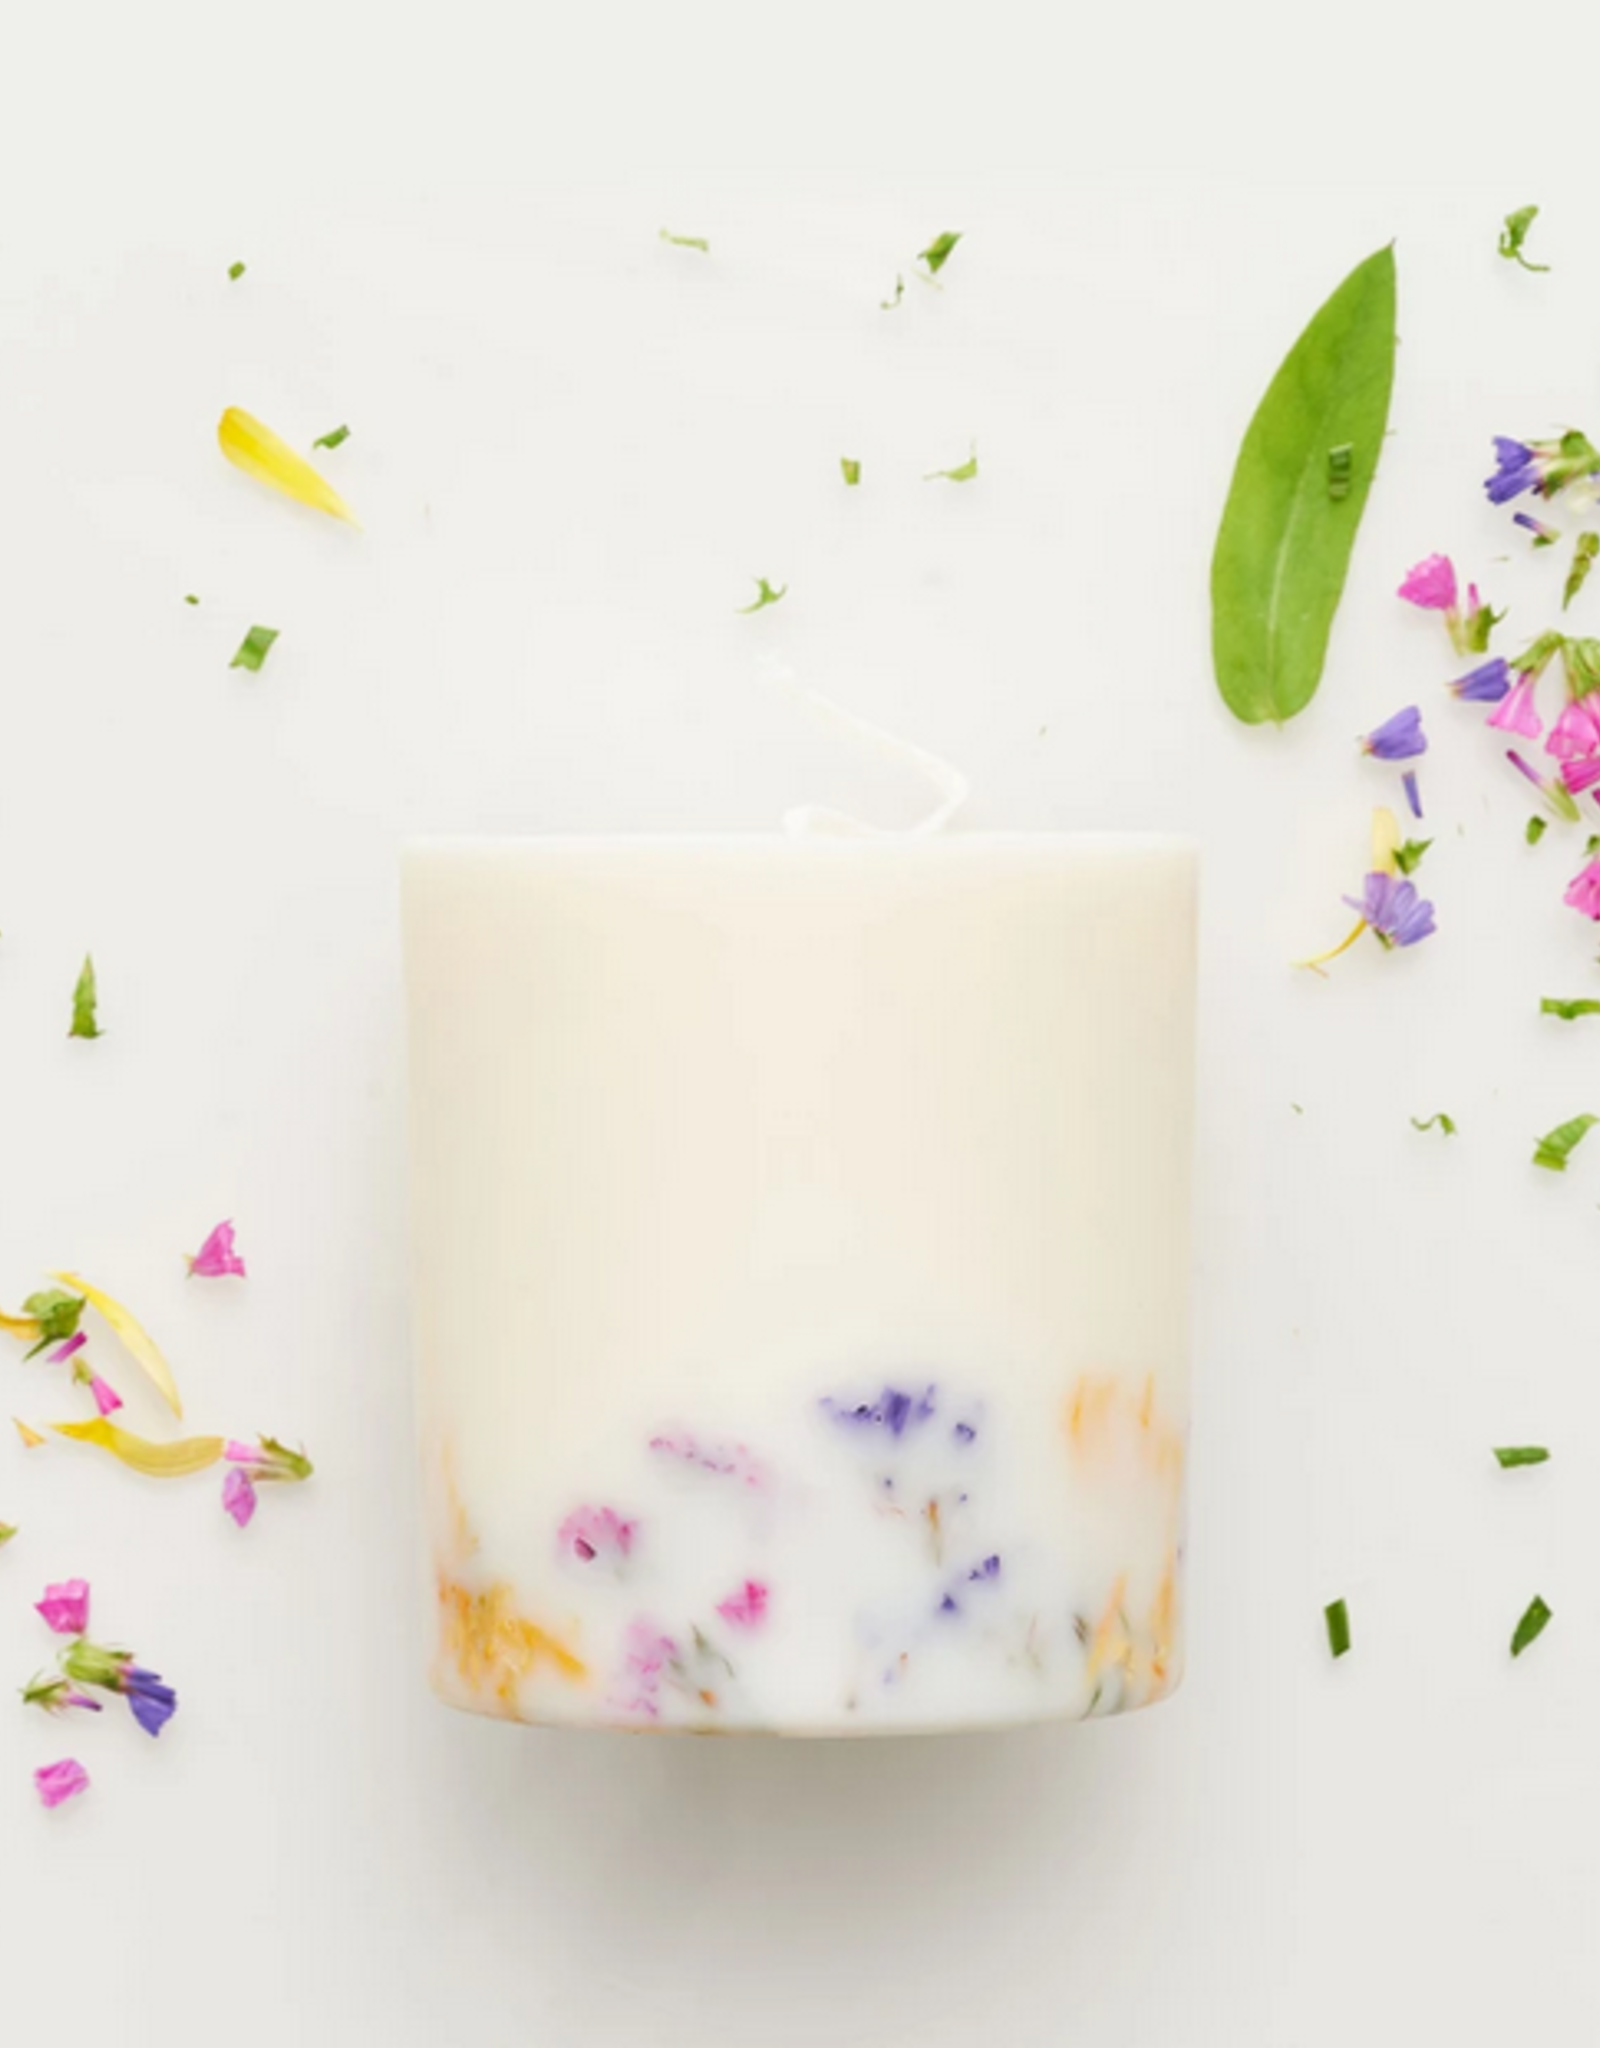 The Munio Wild Flowers Candle